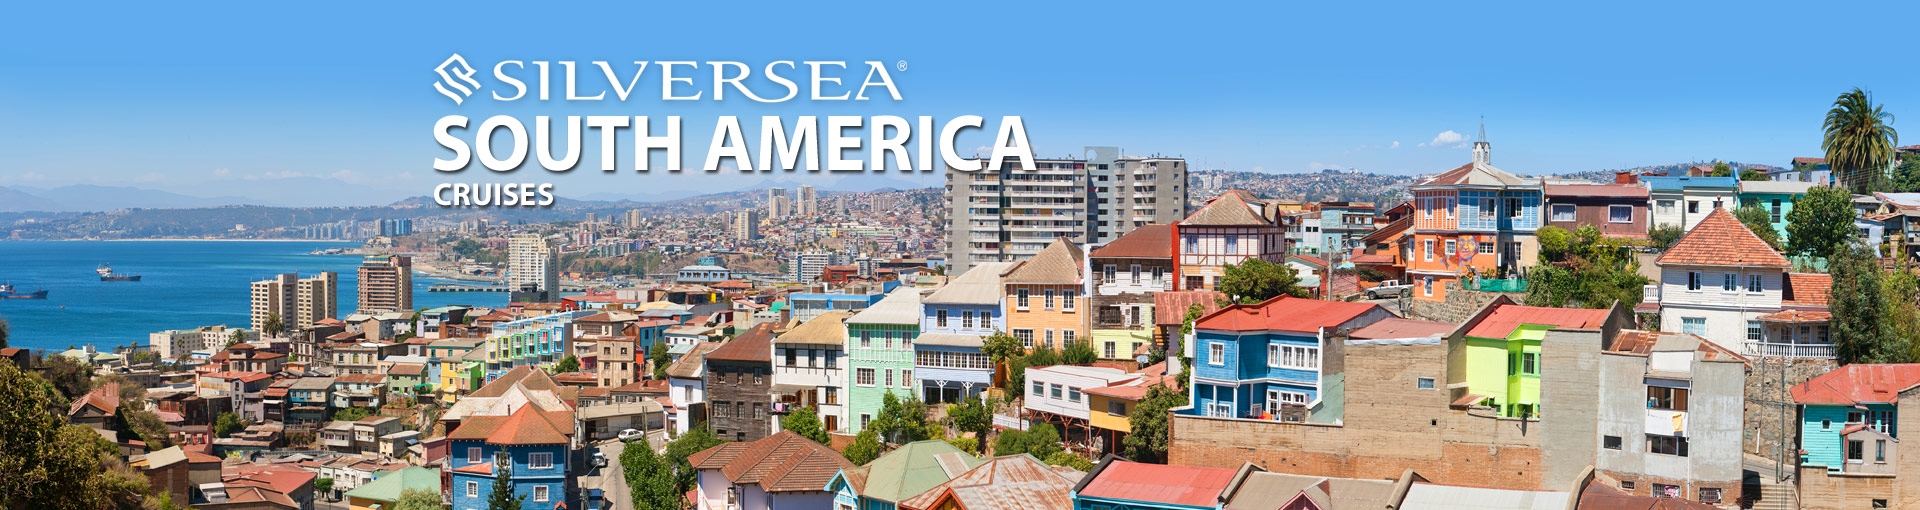 Silversea Cruises South America Cruises